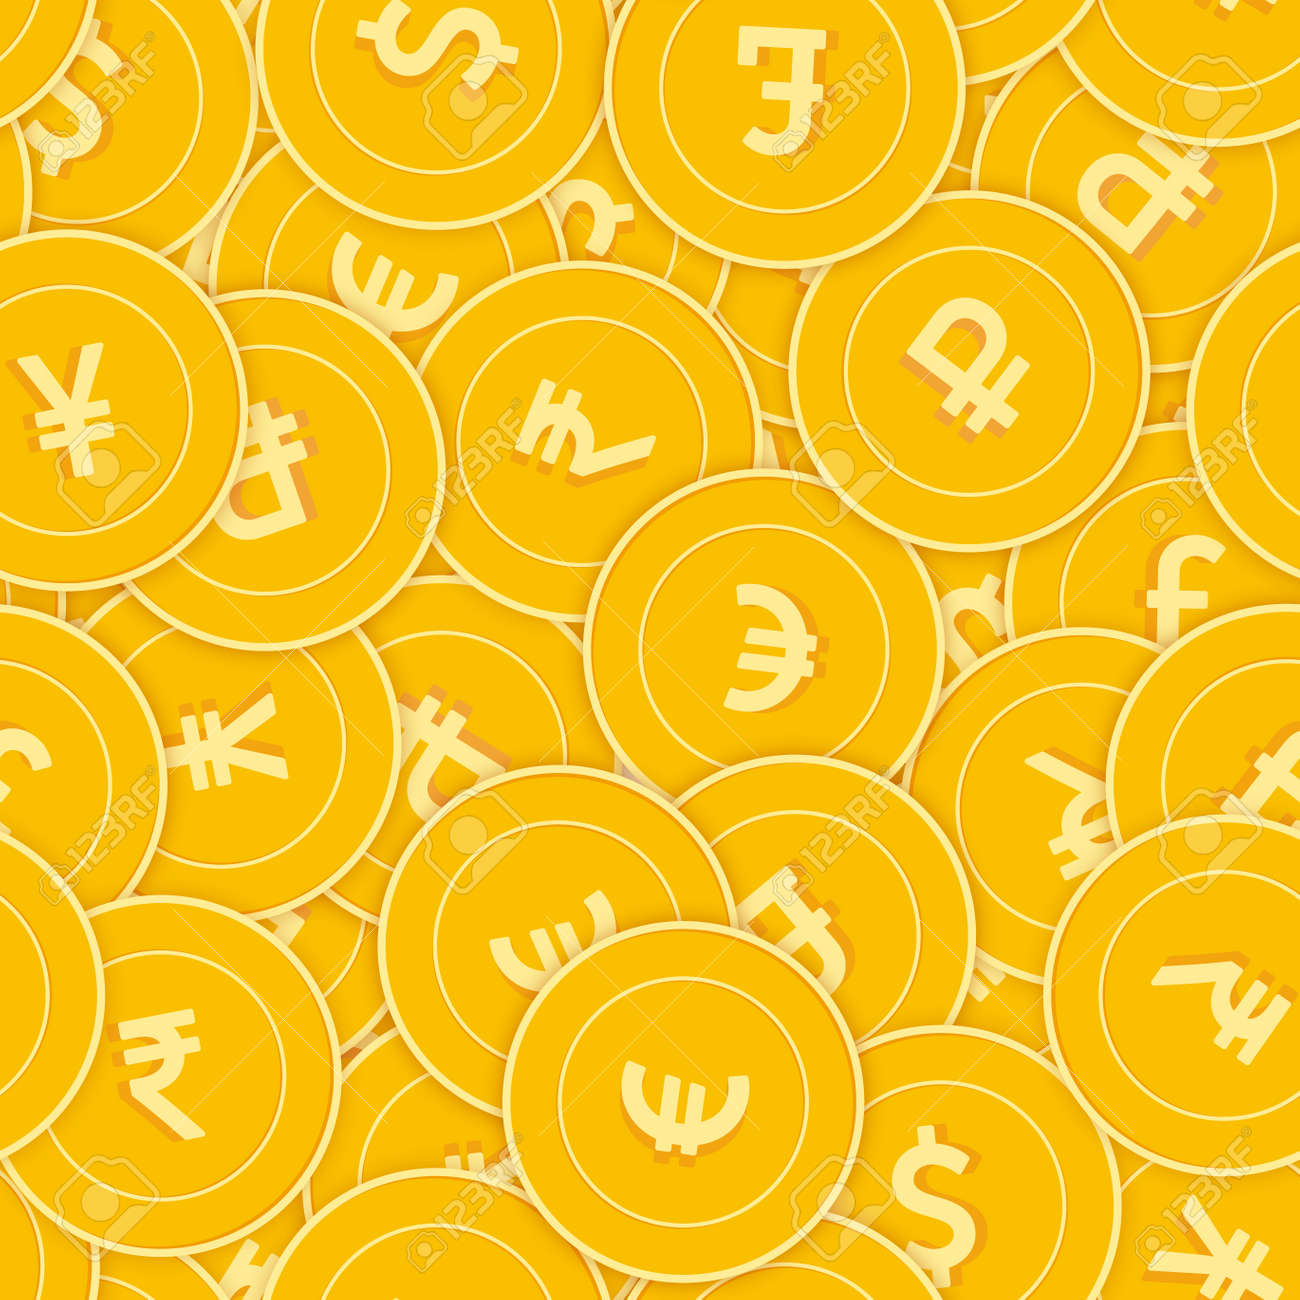 International currencies coins seamless pattern. Appealing scattered Global coins. Big win or success concept. World chaotic shadow money pattern. Coin tile vector illustration. - 166133594